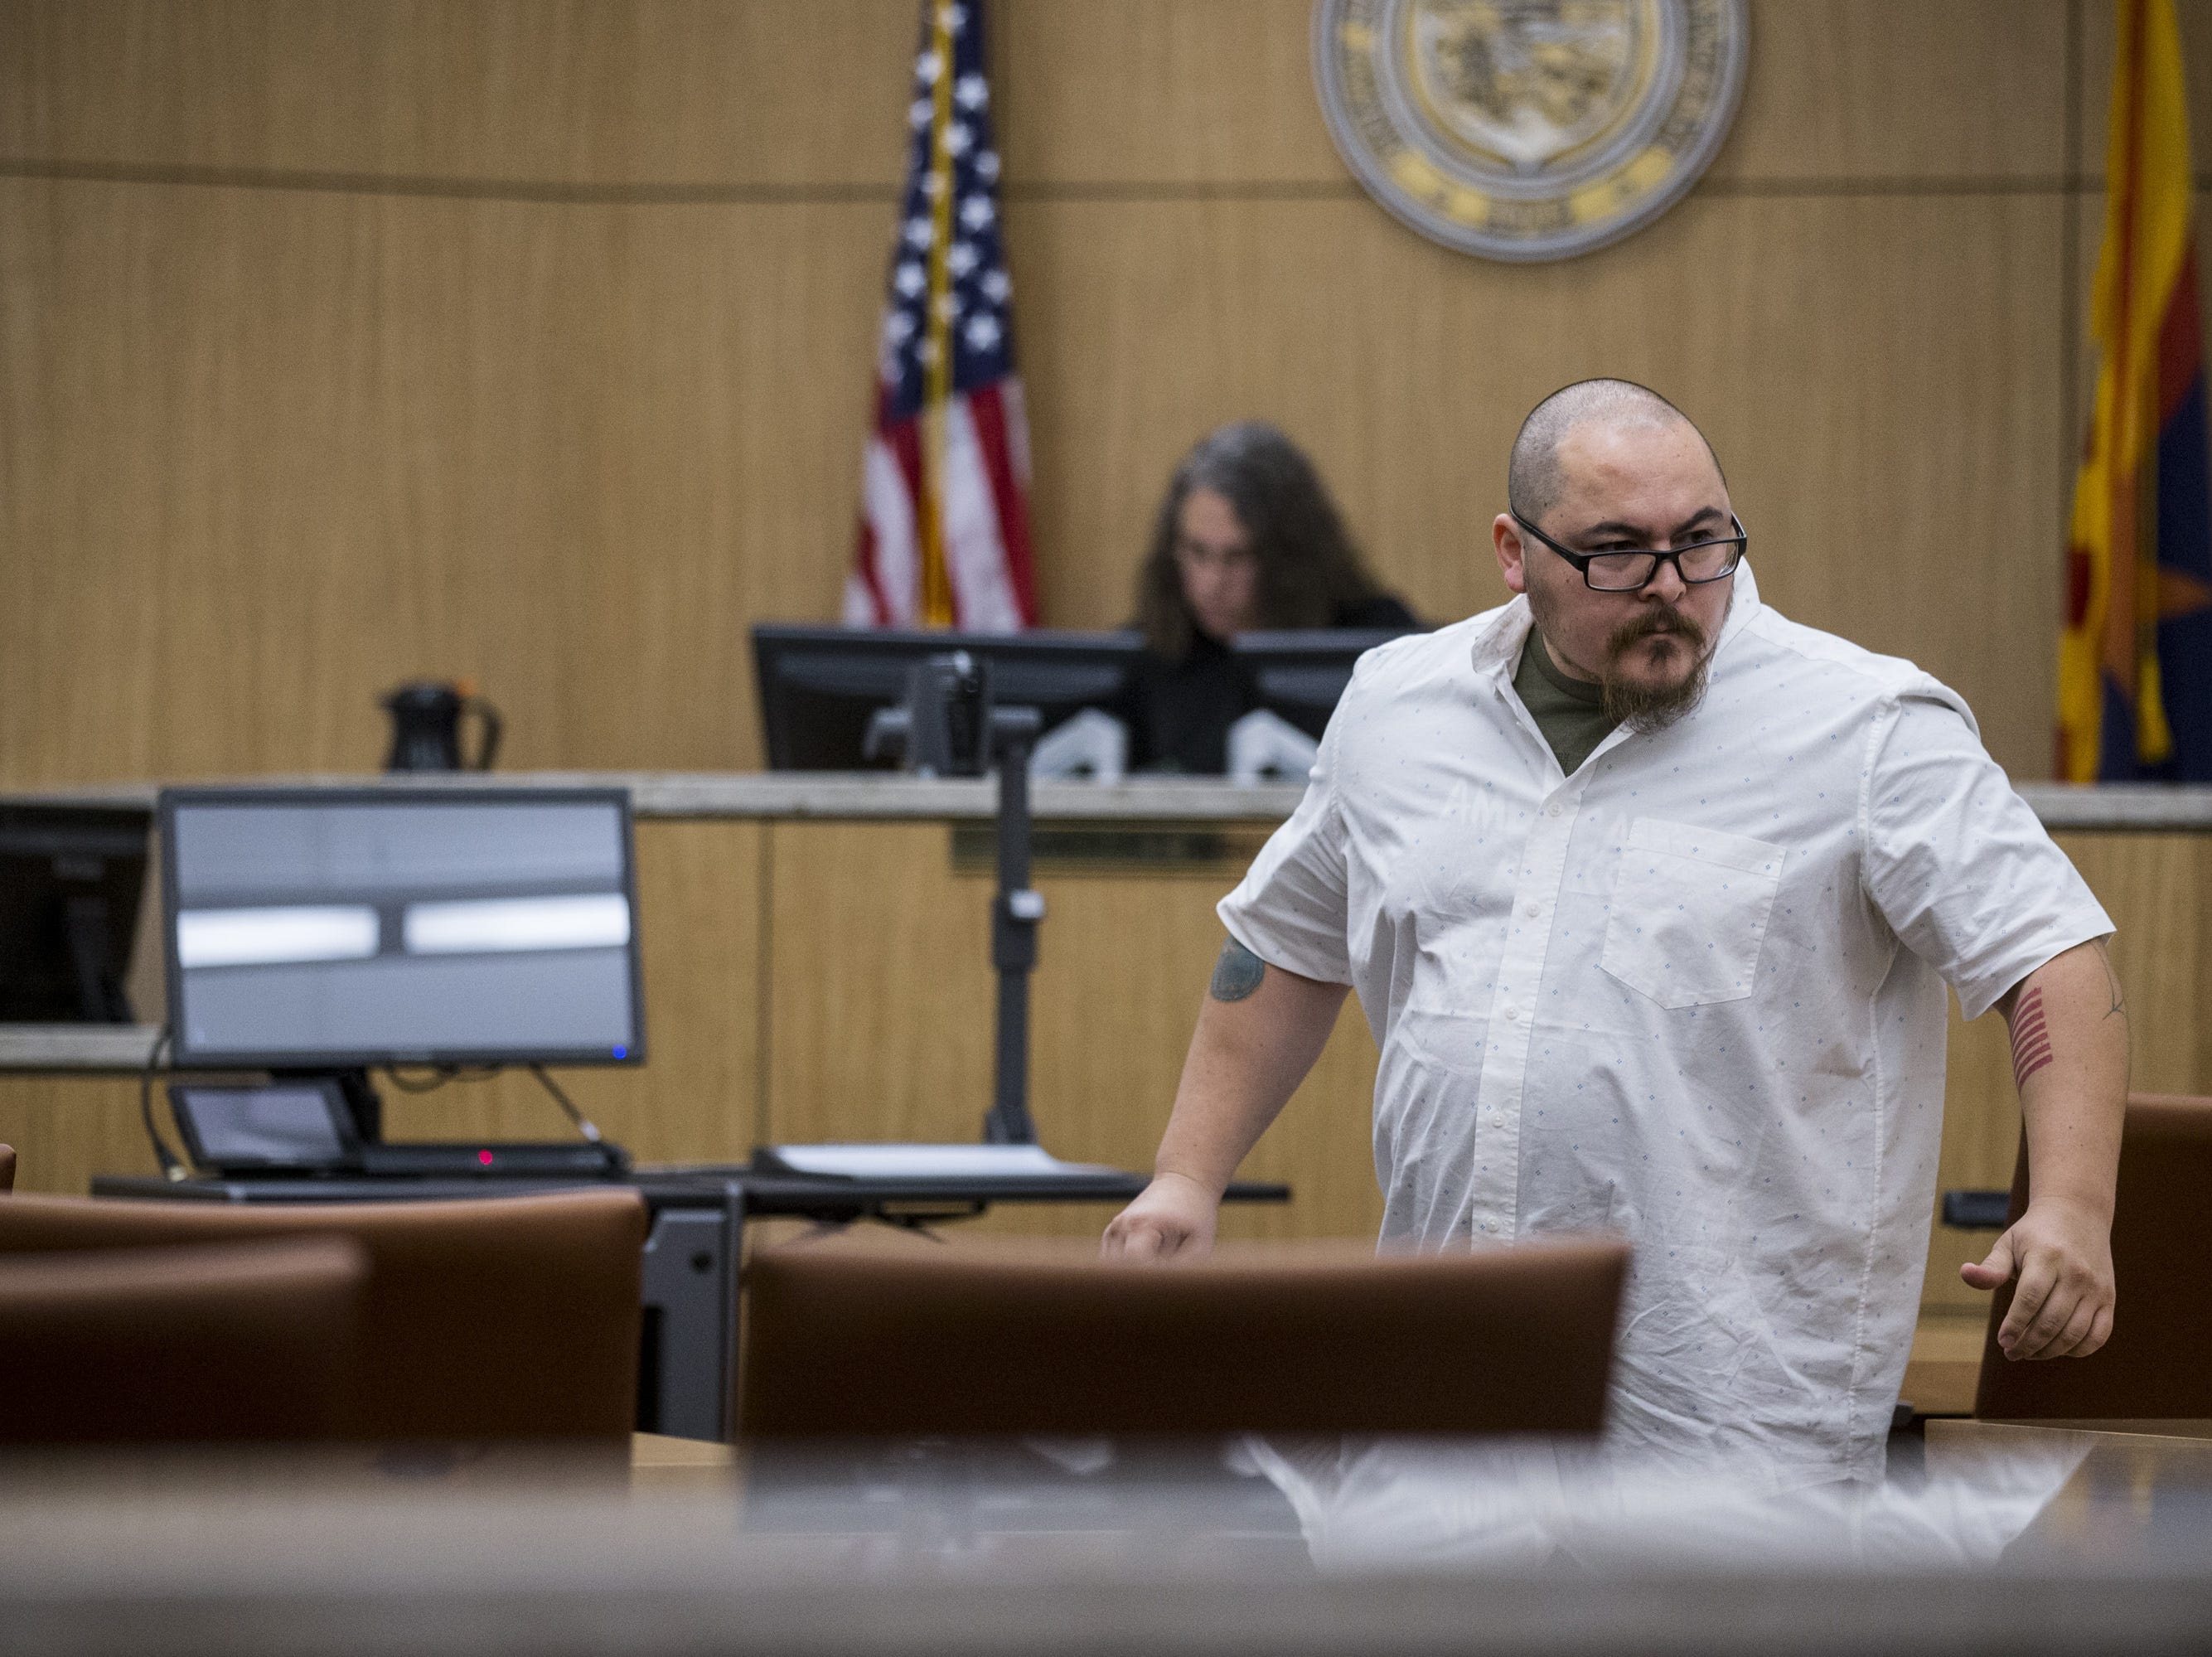 Michael Jaso leaves after receiving his judgment Friday, Aug. 17, 2018, during a hearing for people who failed to show up for jury duty at Maricopa County Superior Court in Phoenix.